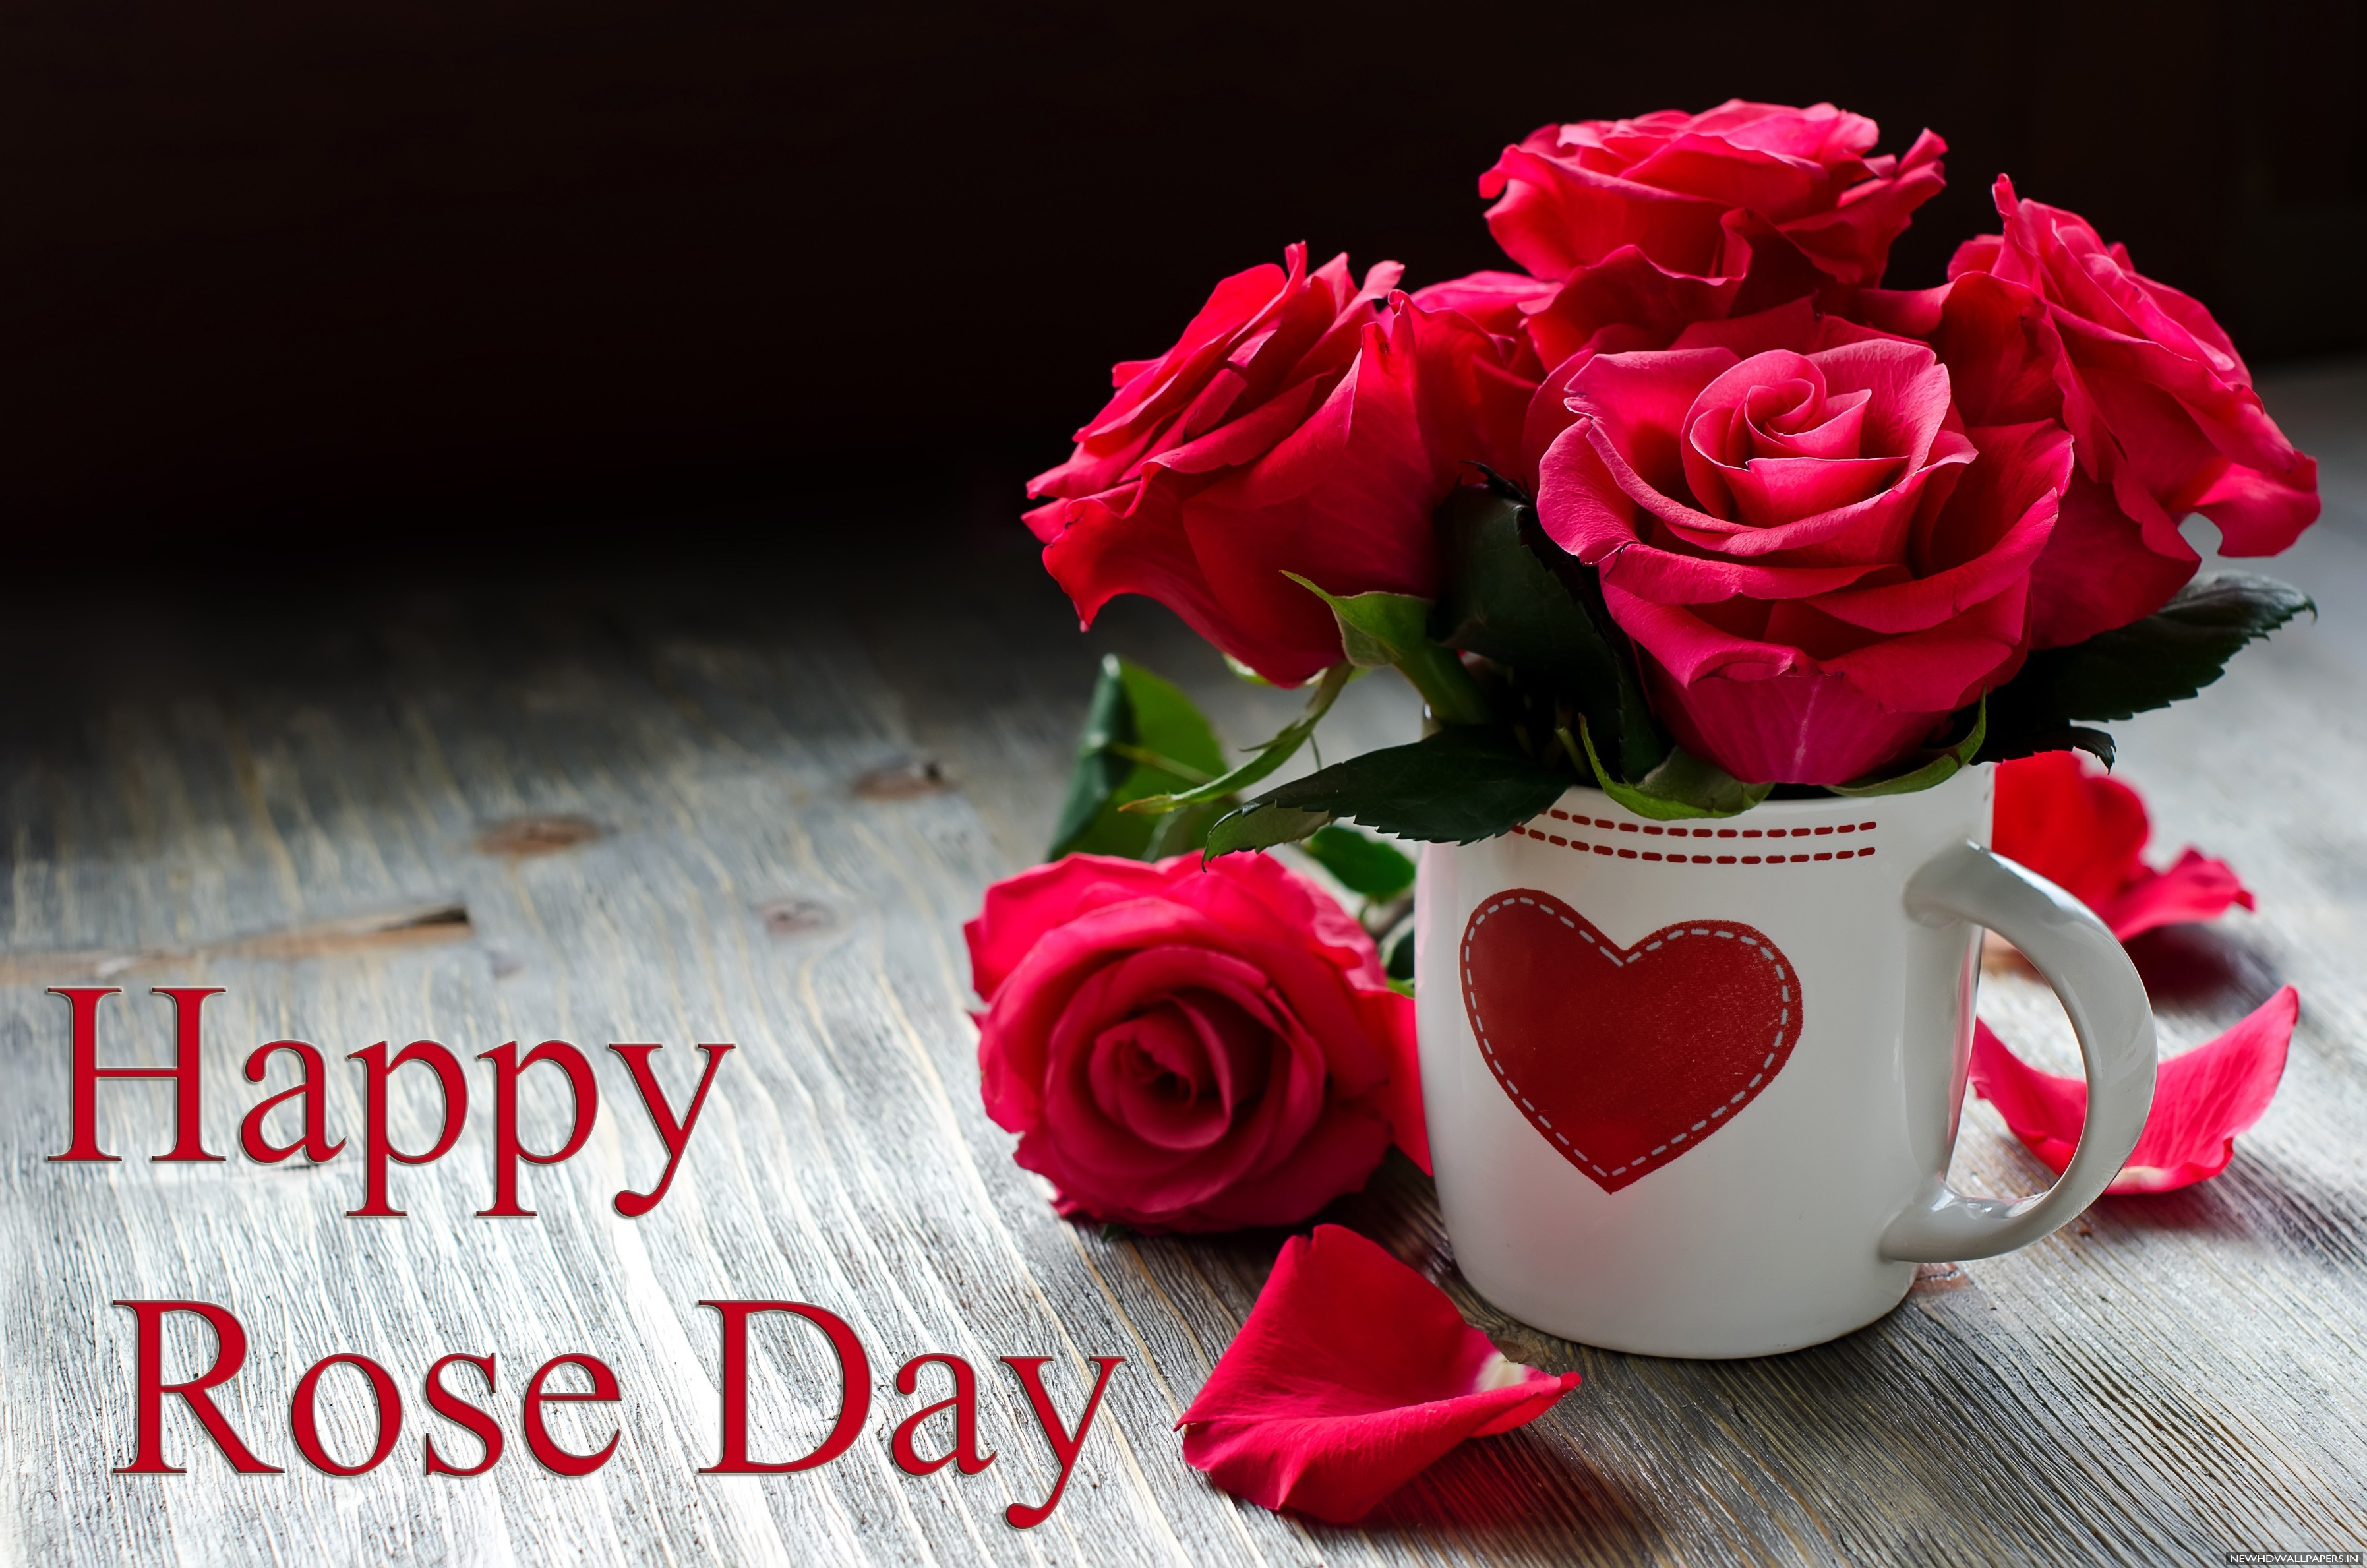 Rose Day-days of love